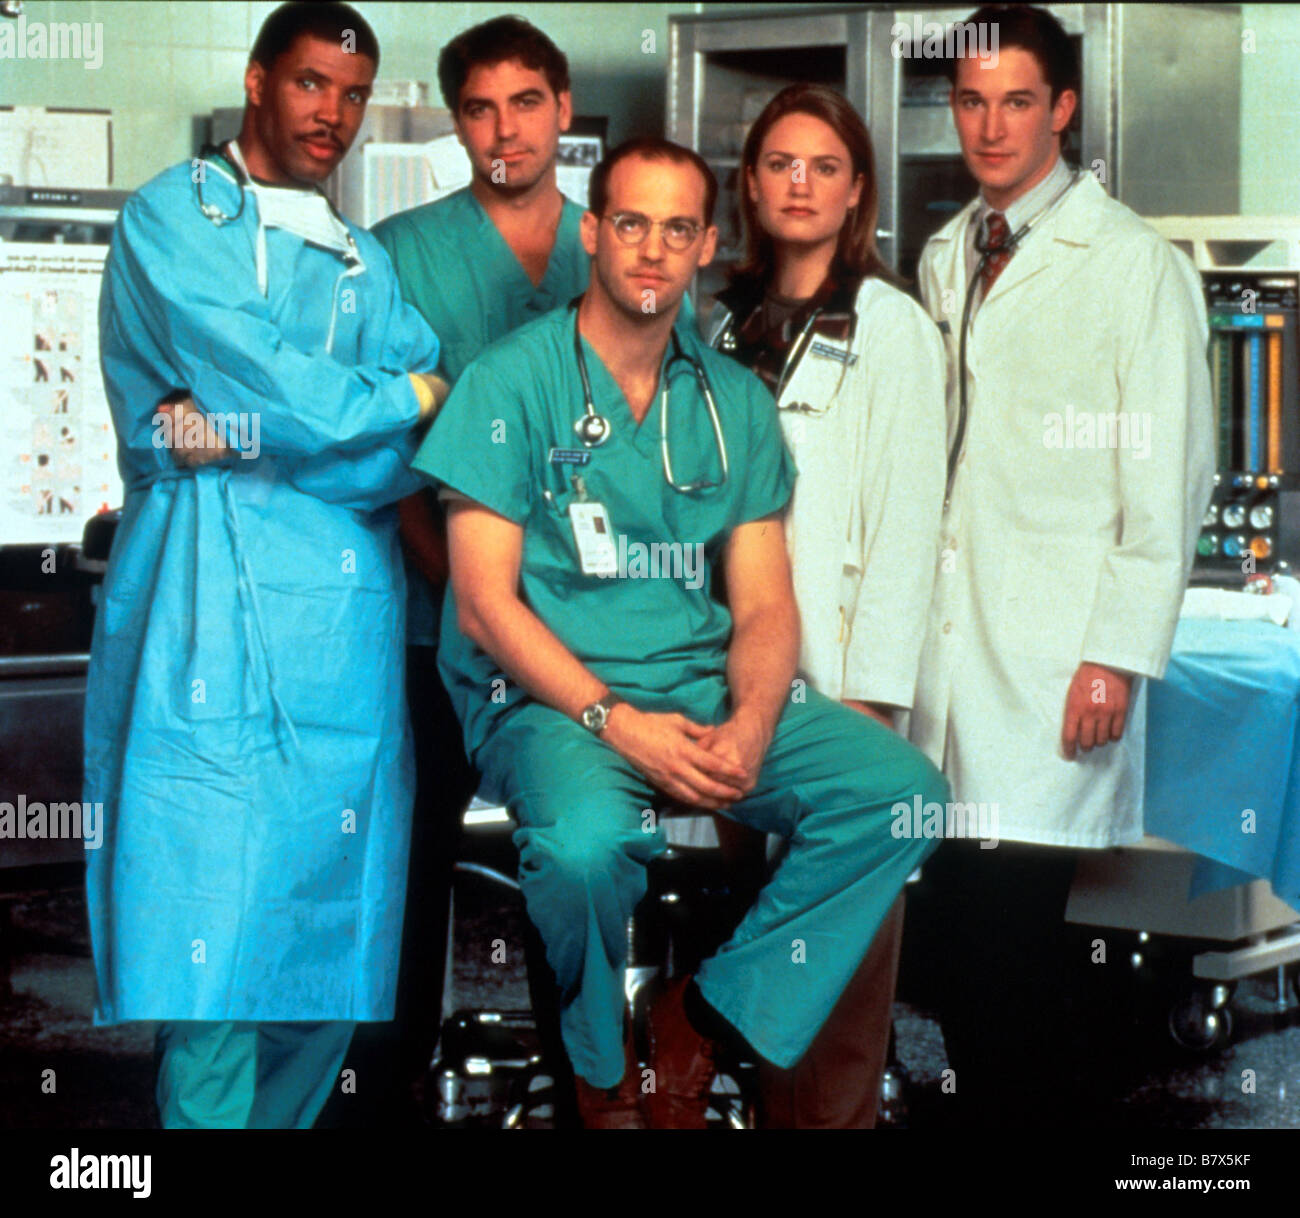 er tv series 1994 2009 usa george clooney anthony edwards eriq